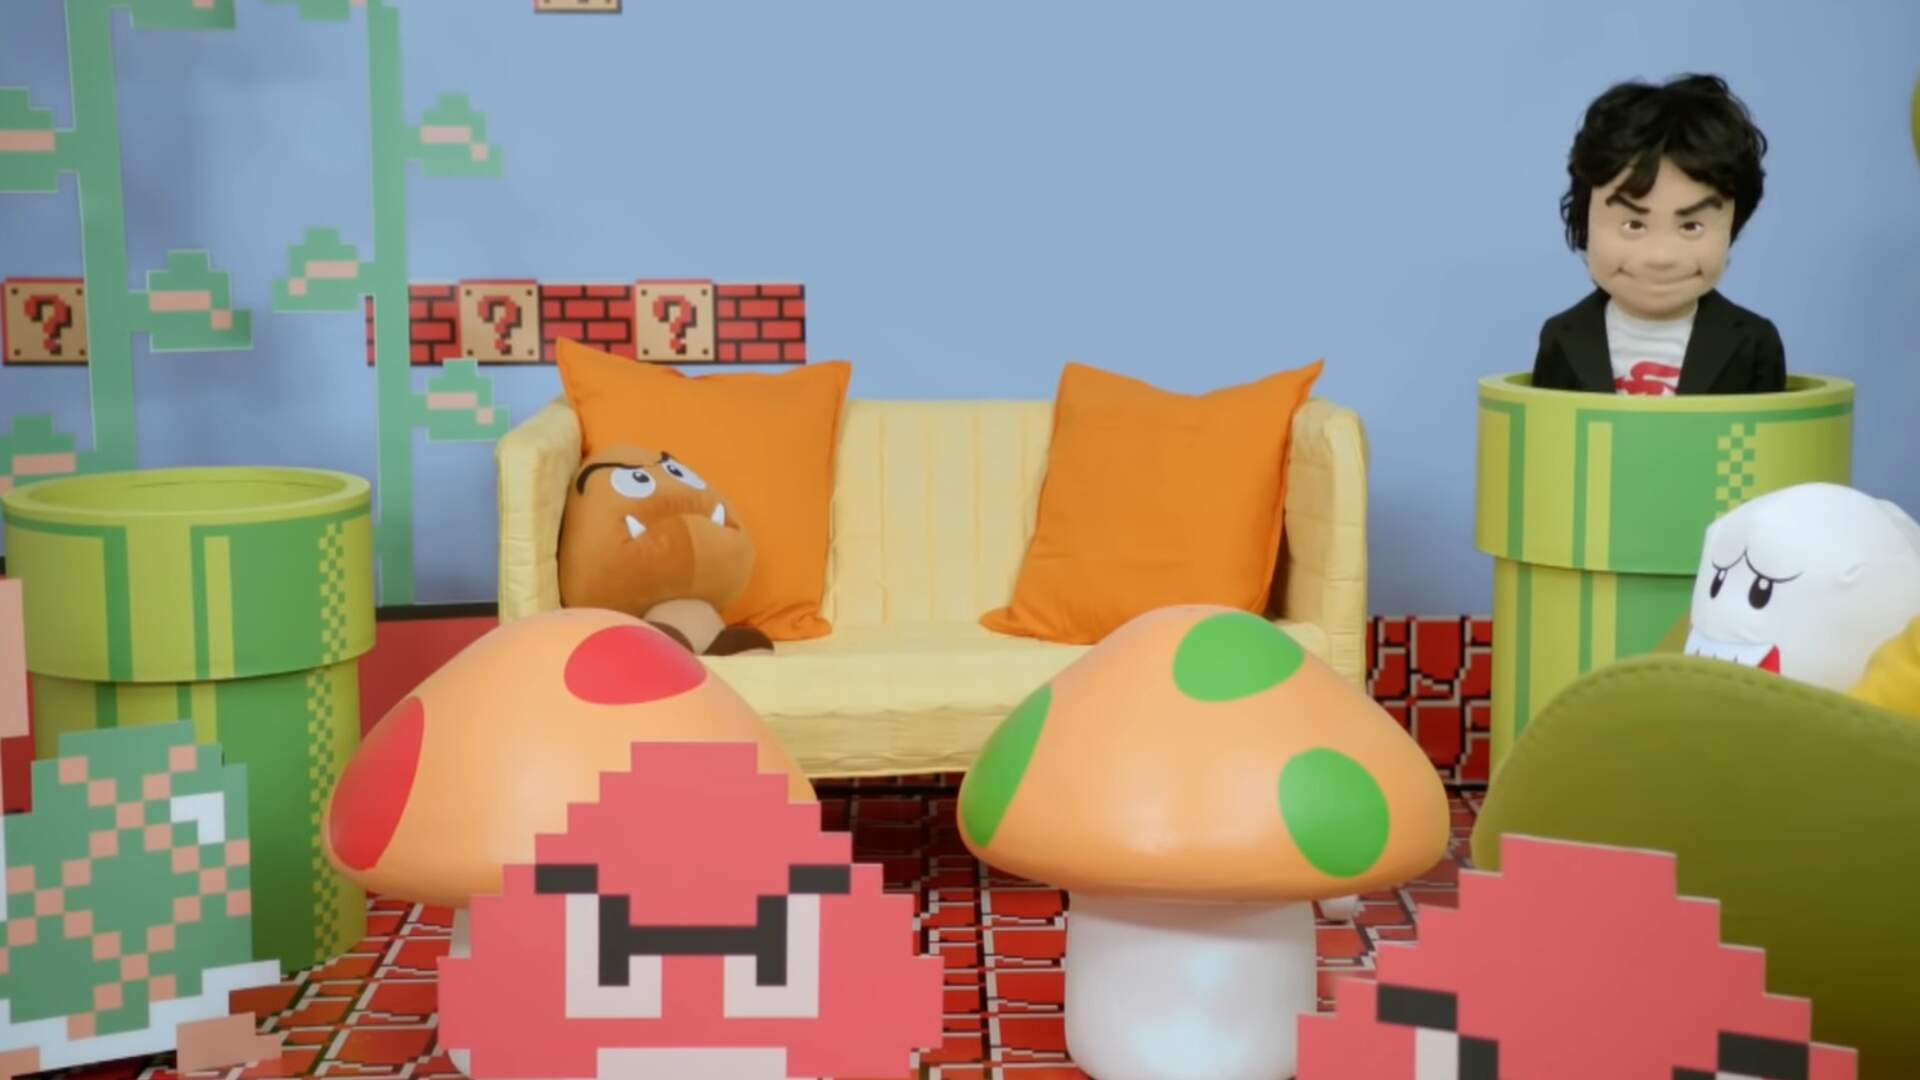 Nintendo Direct Hype Has Gotten Out of Control—And I Love It